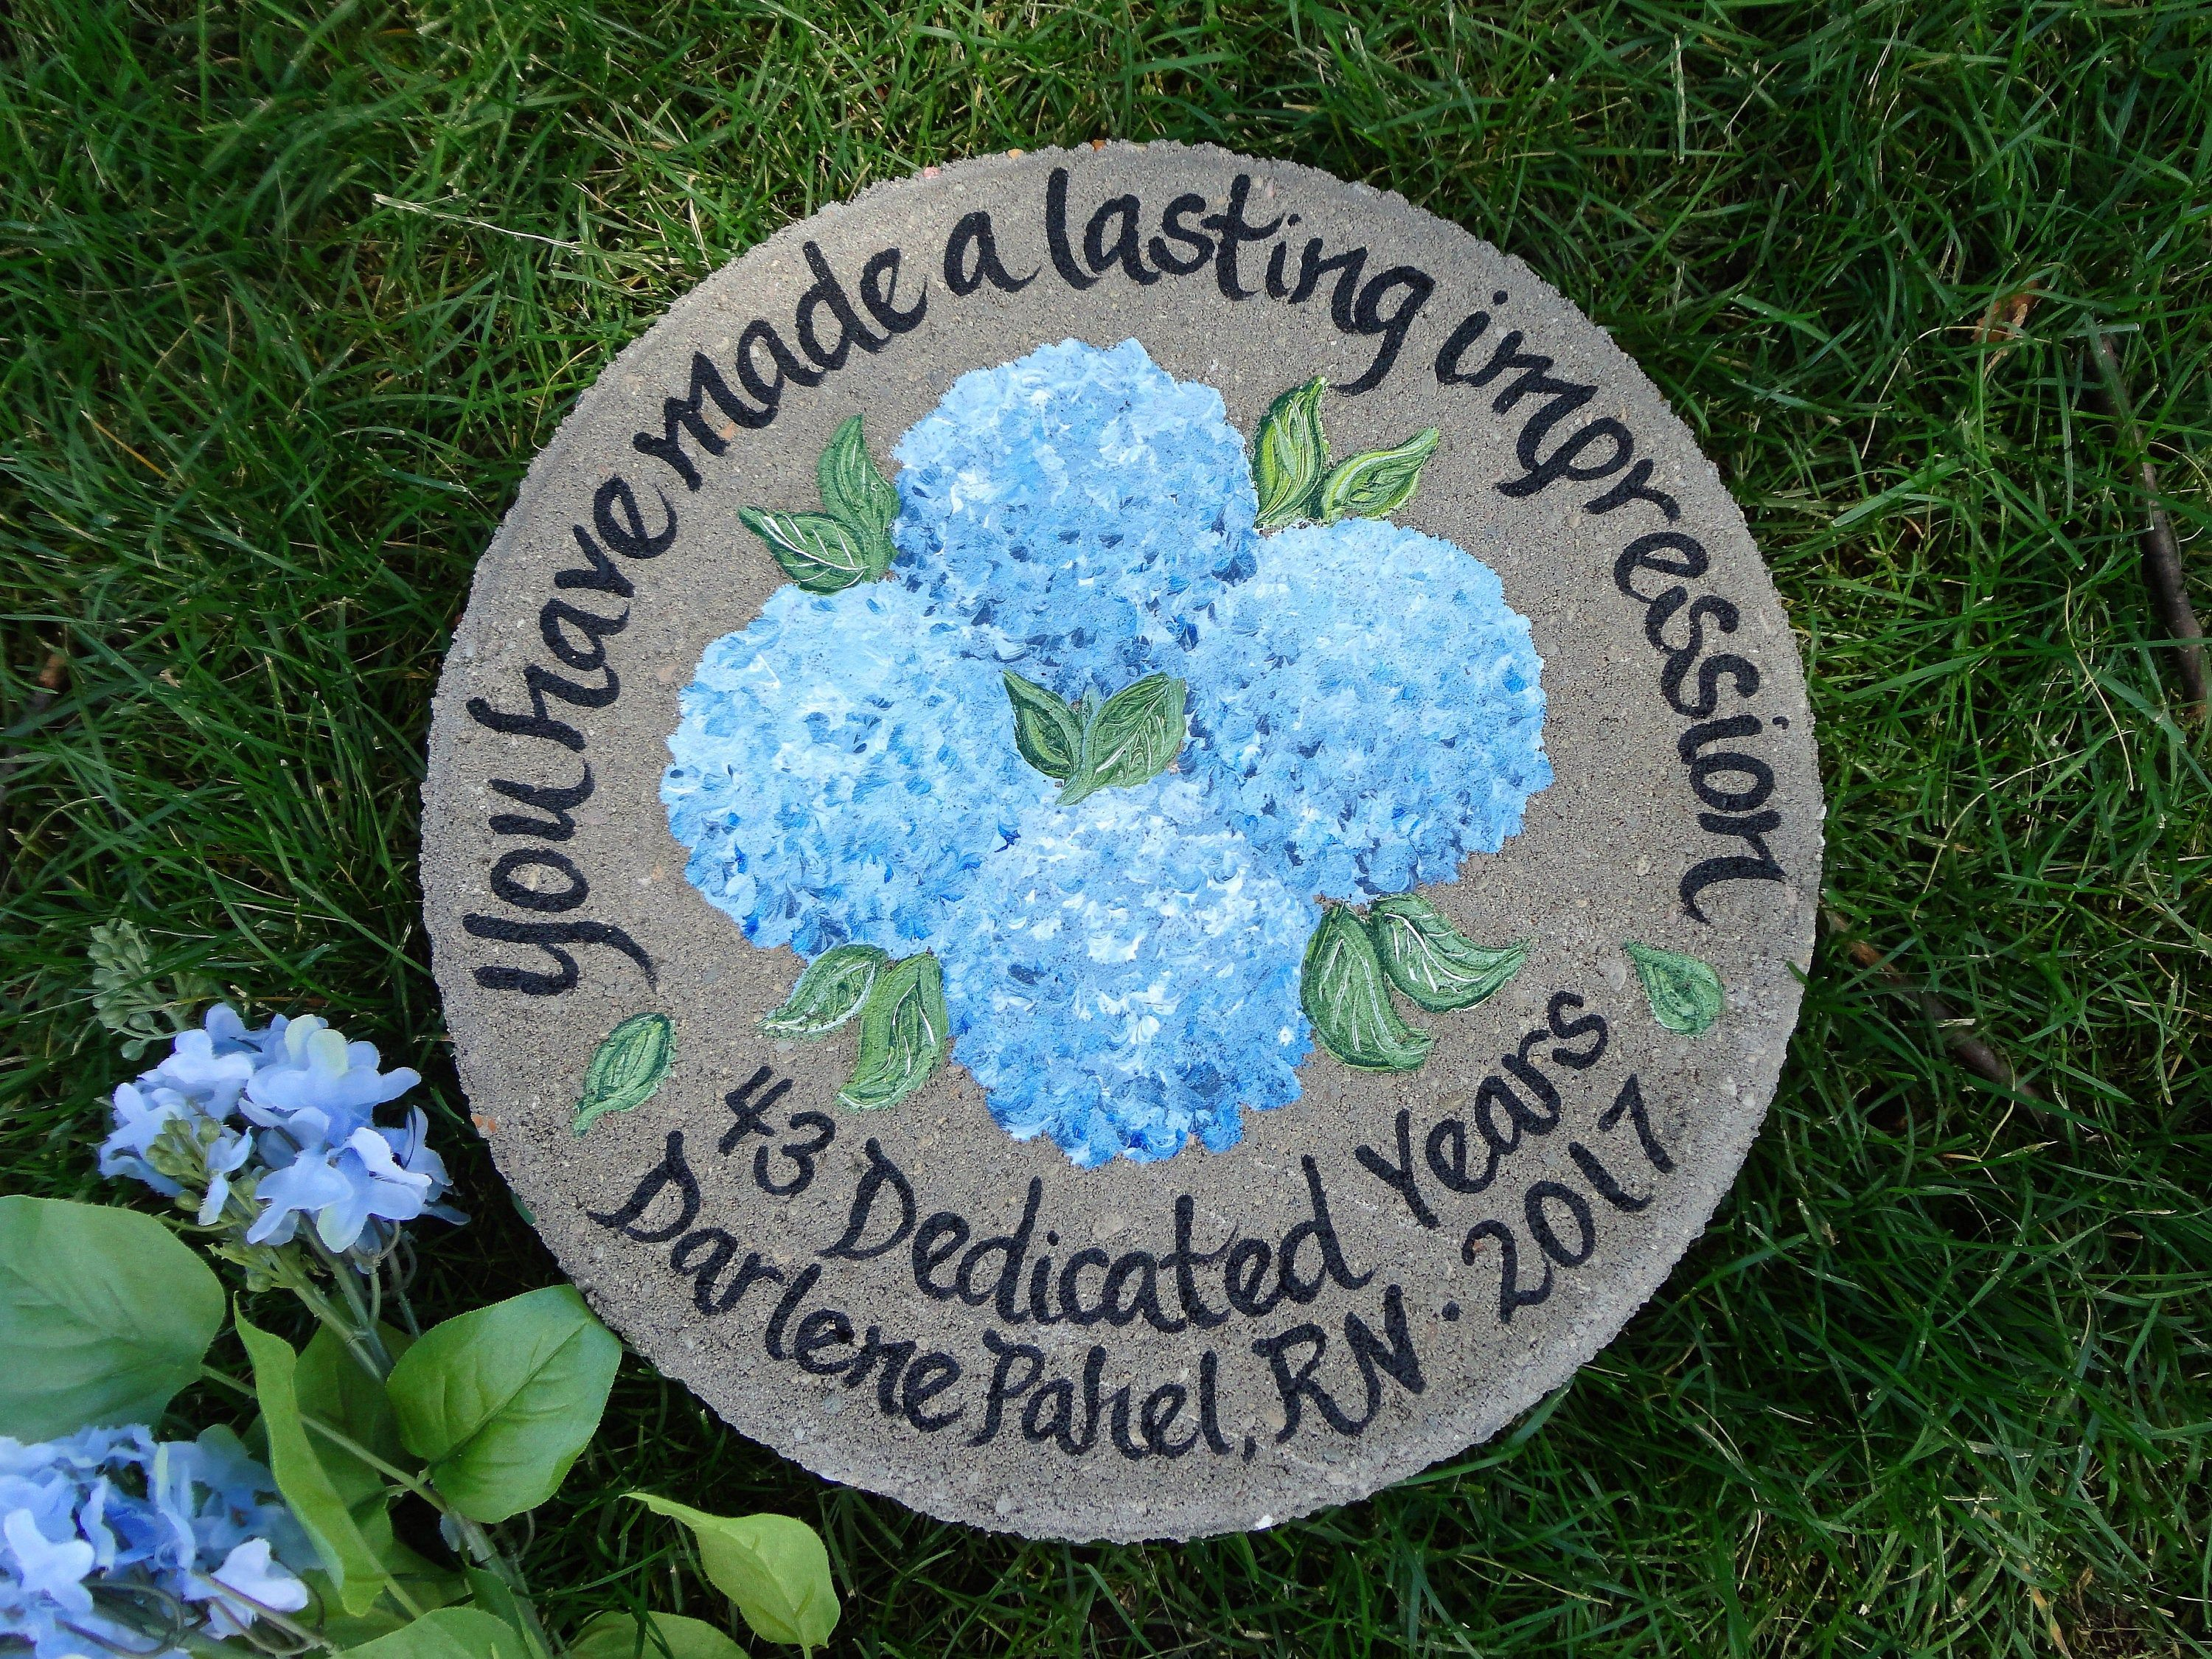 RETIREMENT GIFT, Hand Painted Stepping Stone, Retirement Gifts, Blue Hydrangeas, Gift from Students, Gift for Teacher, Employee Gift Ideas